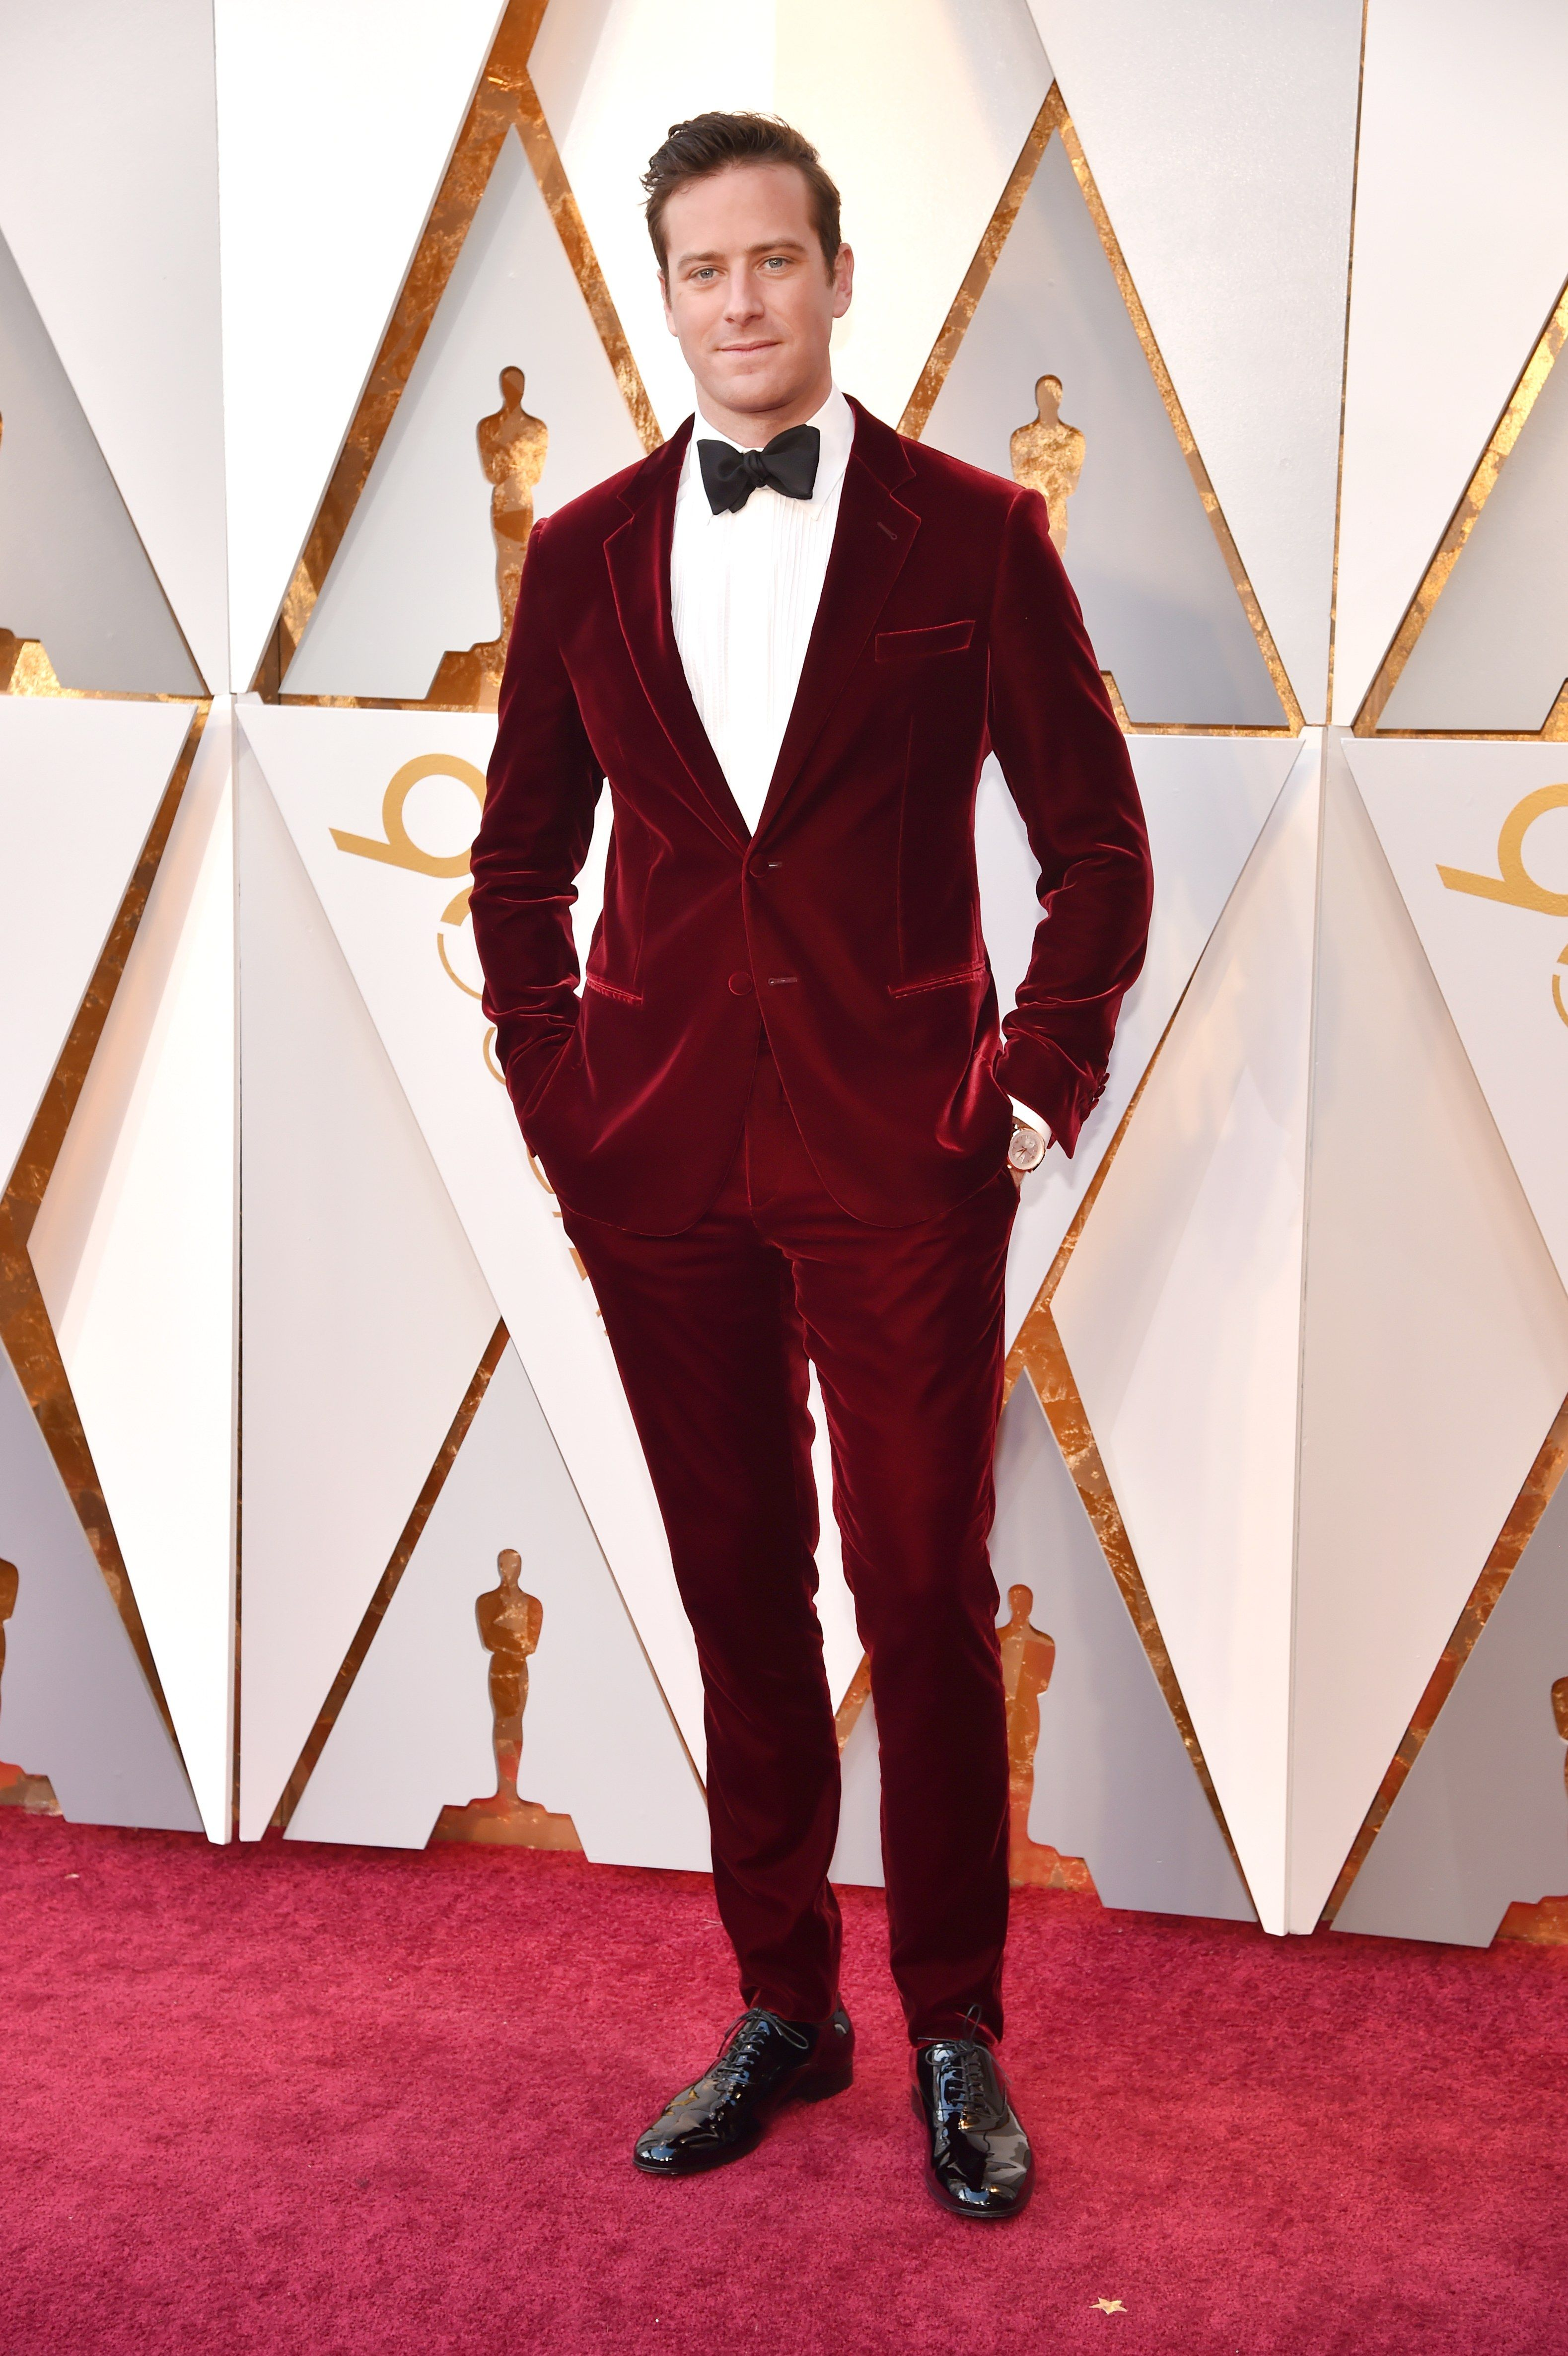 Oscars 2018 Roter Teppich The Best Dressed Men On The Oscars 2018 Red Carpet Celebrity